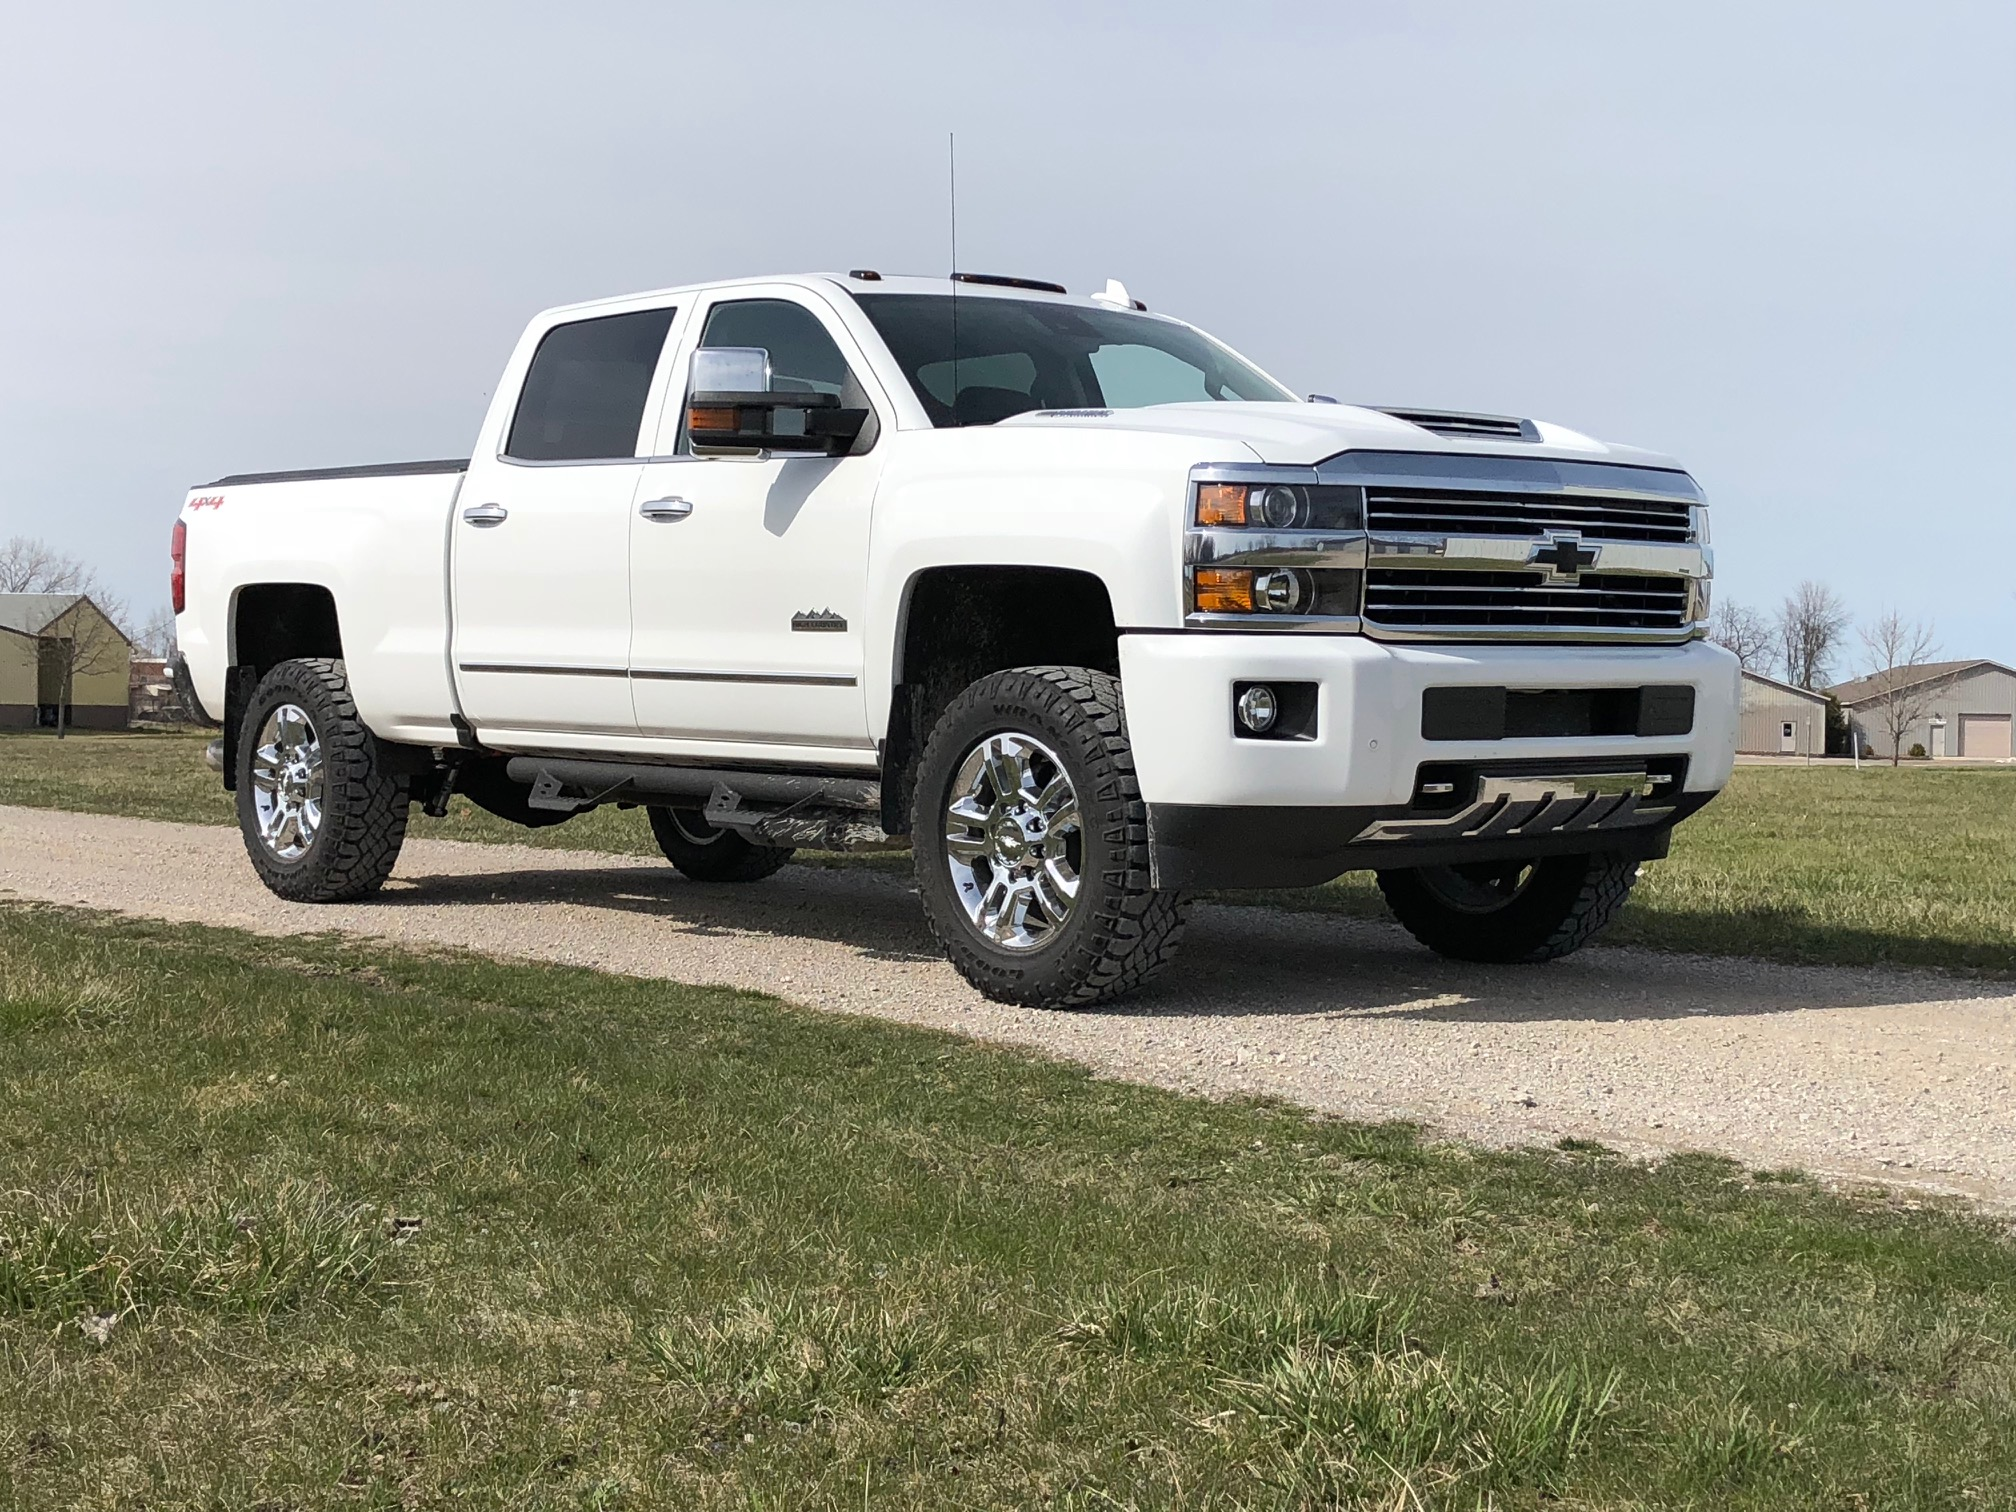 2011 2019 Gm Hd Stage2 3 Leveling Kit Smx Gm Hd Stage2 Suspensionmaxx